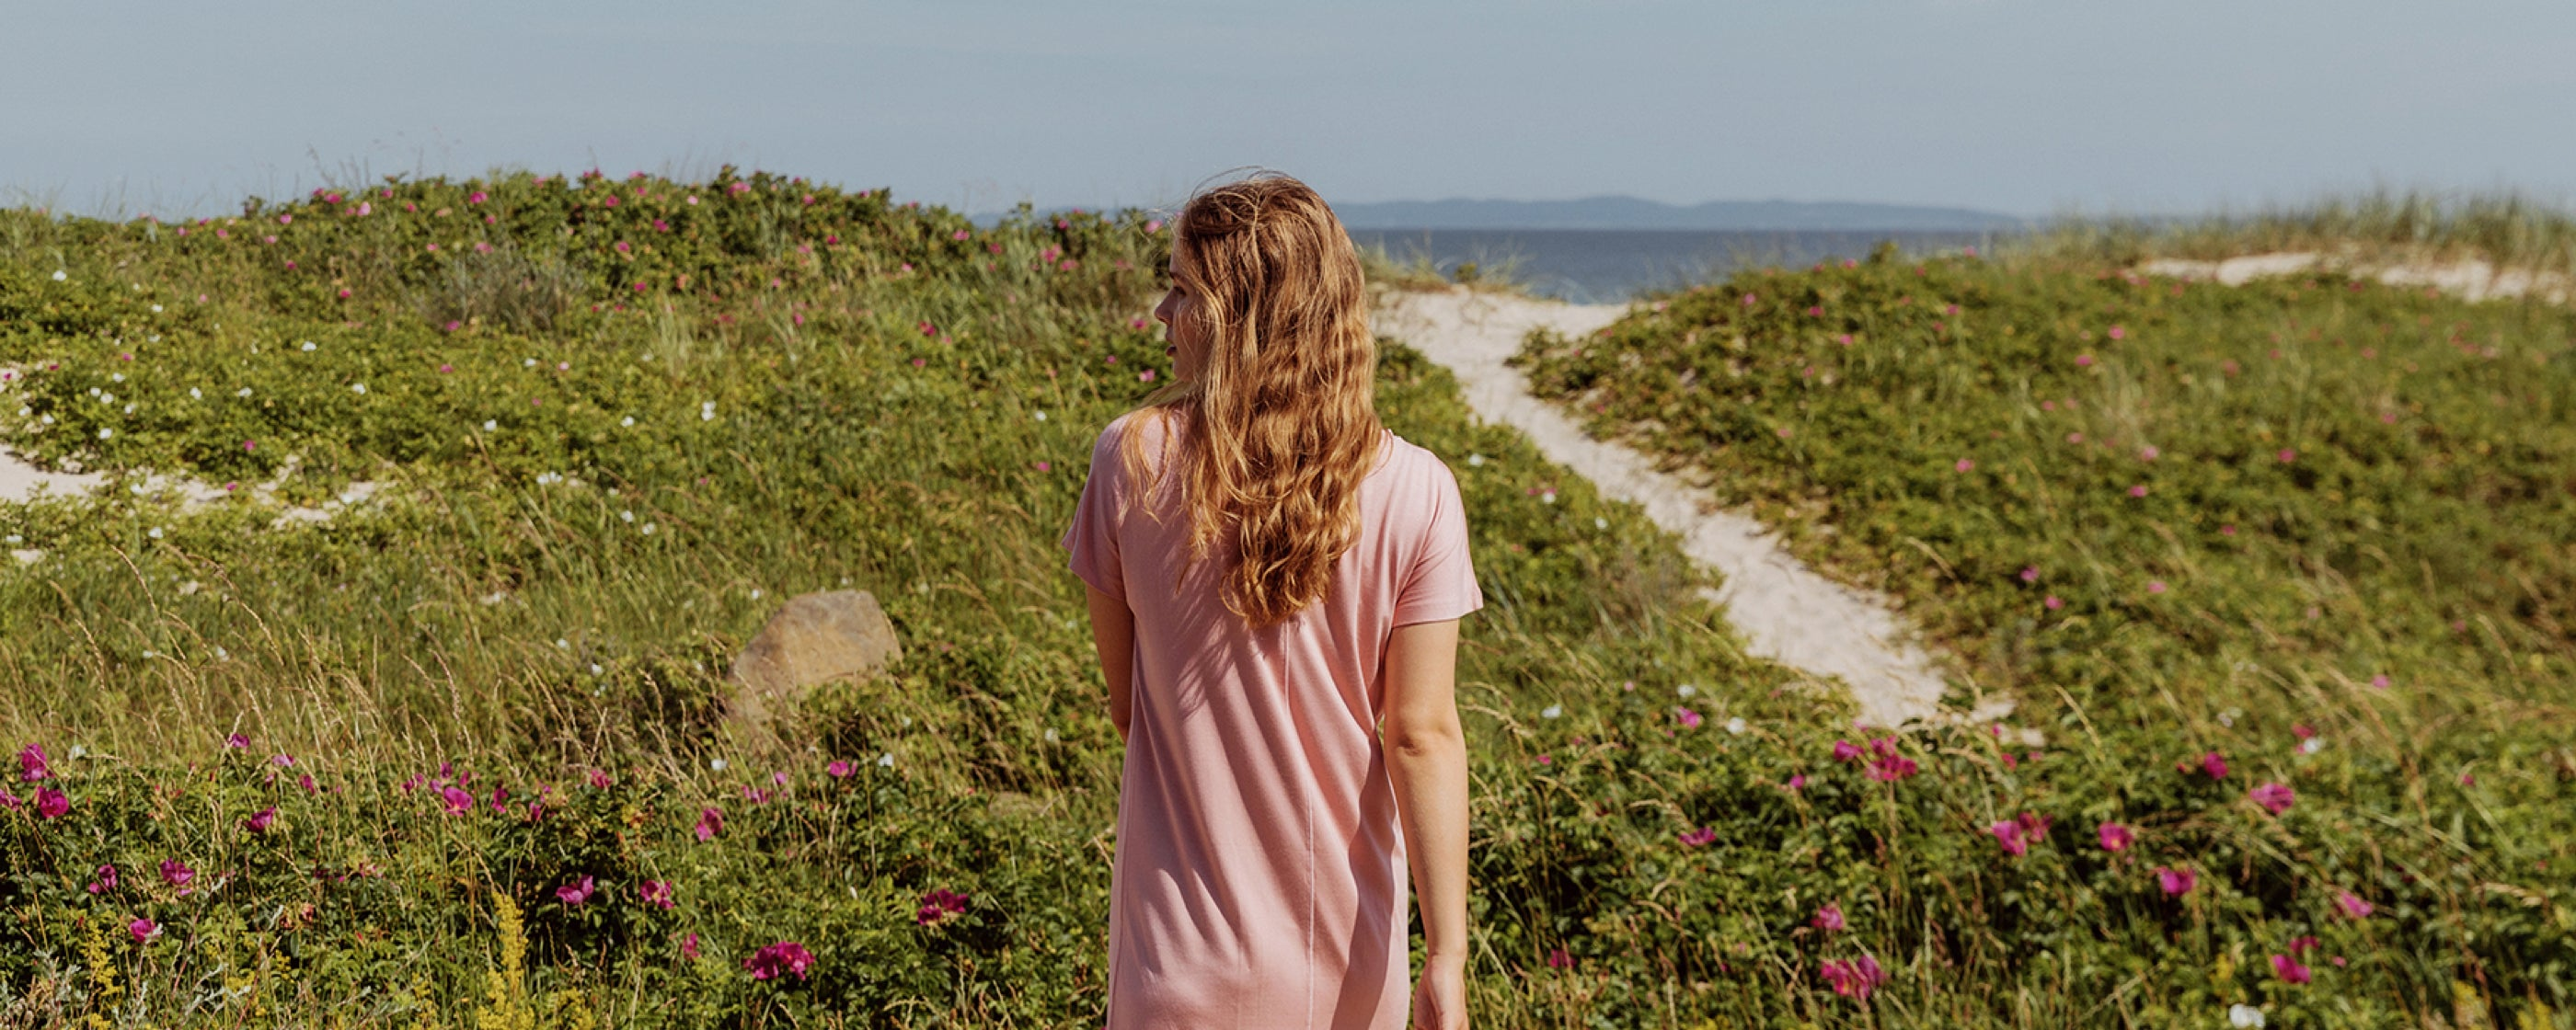 Why is sustainable, ethical sleepwear important?